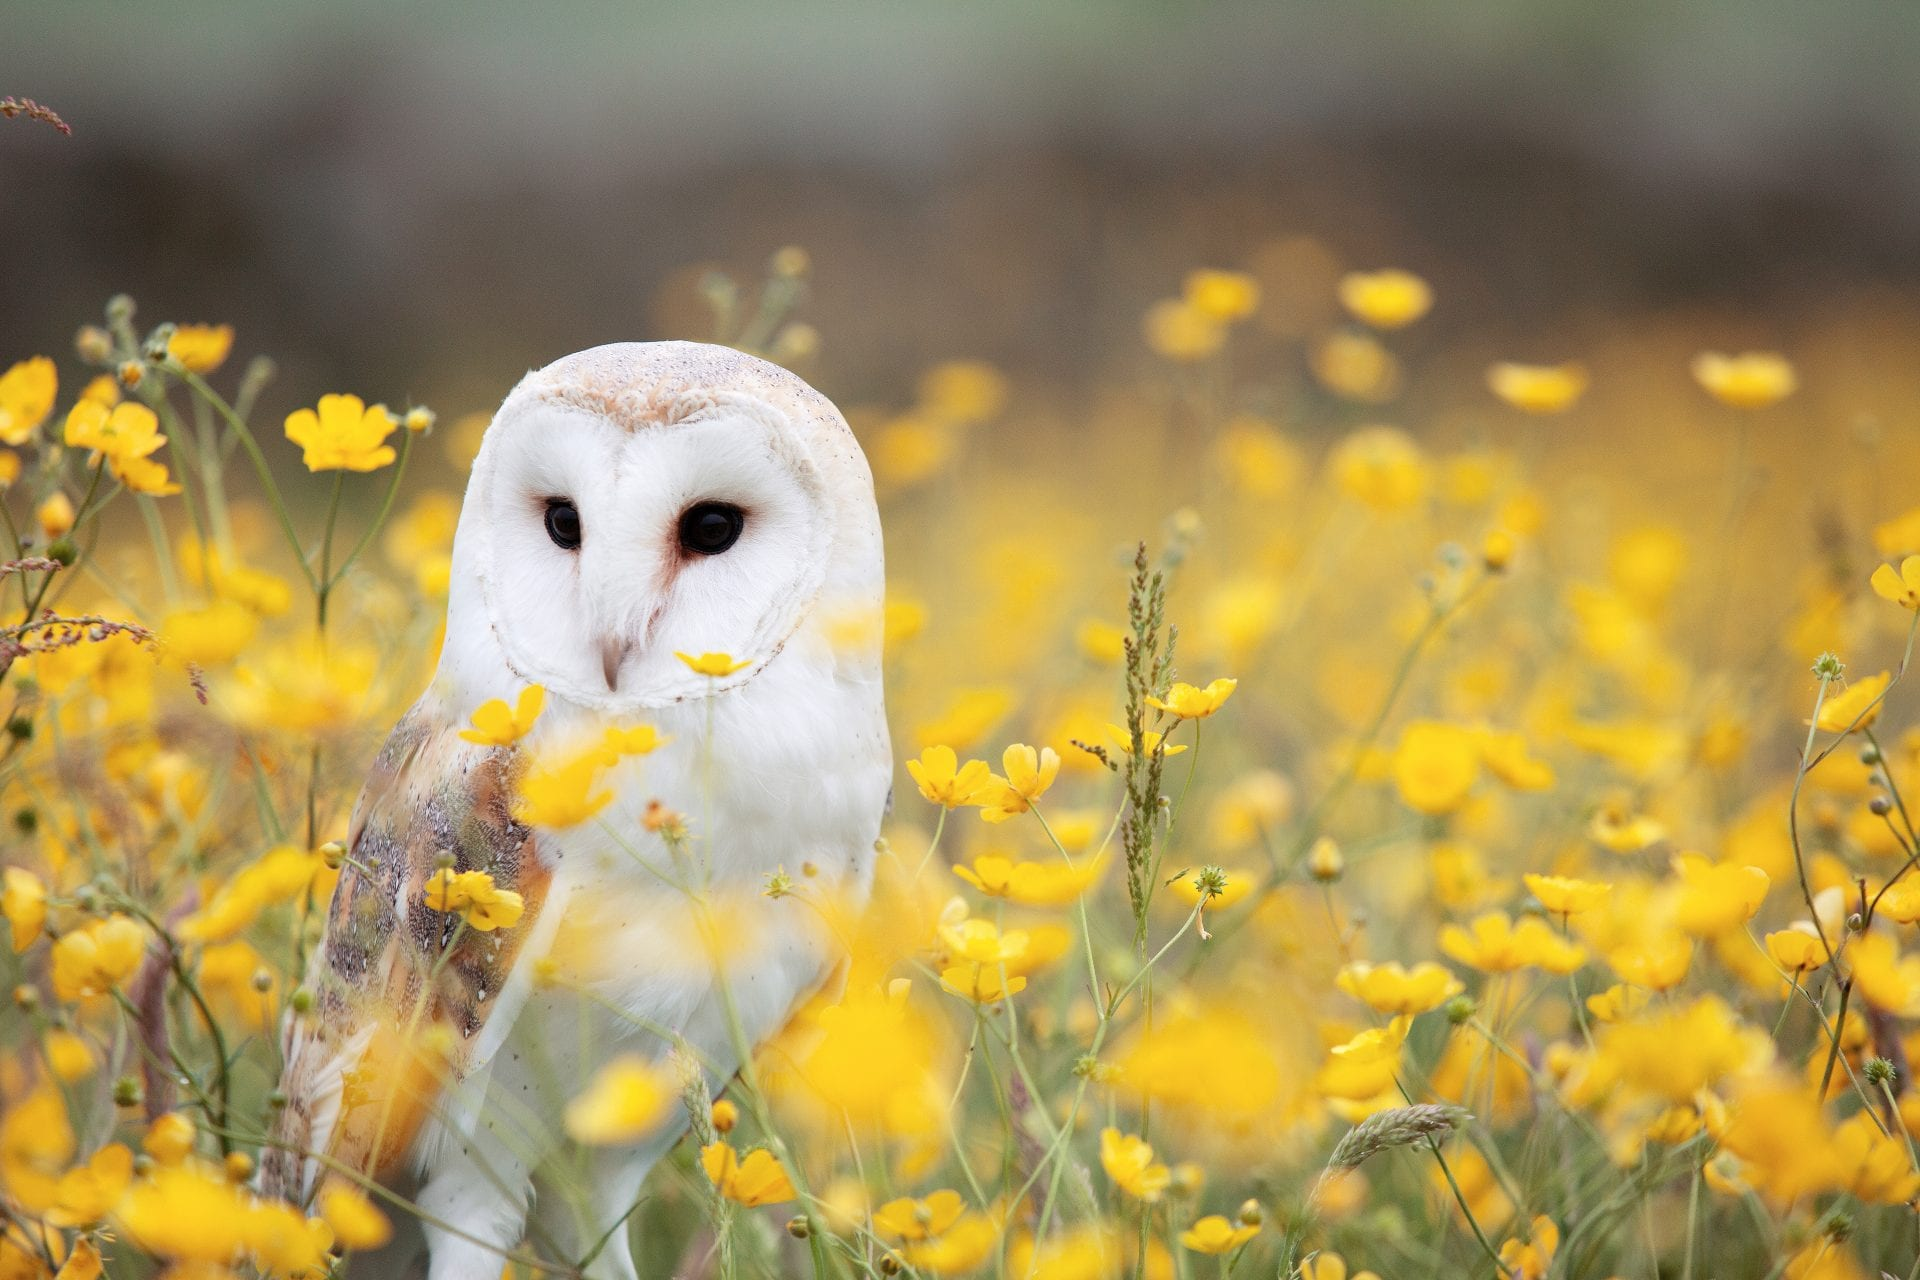 barn-owl-in-a-field-of-buttercups